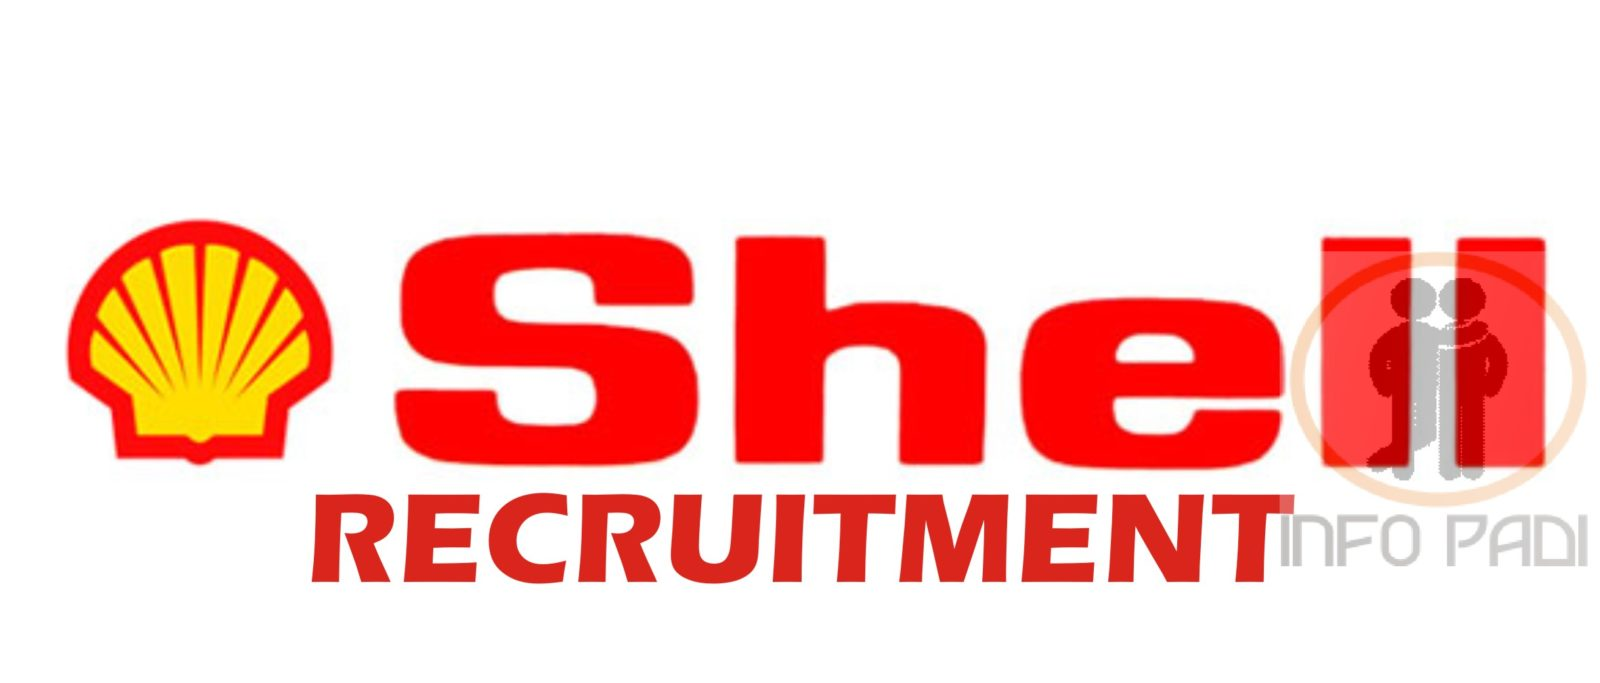 APPLY FOR THE 2018/2019 Shell Recruitment- full details and guidelines on how to get the job